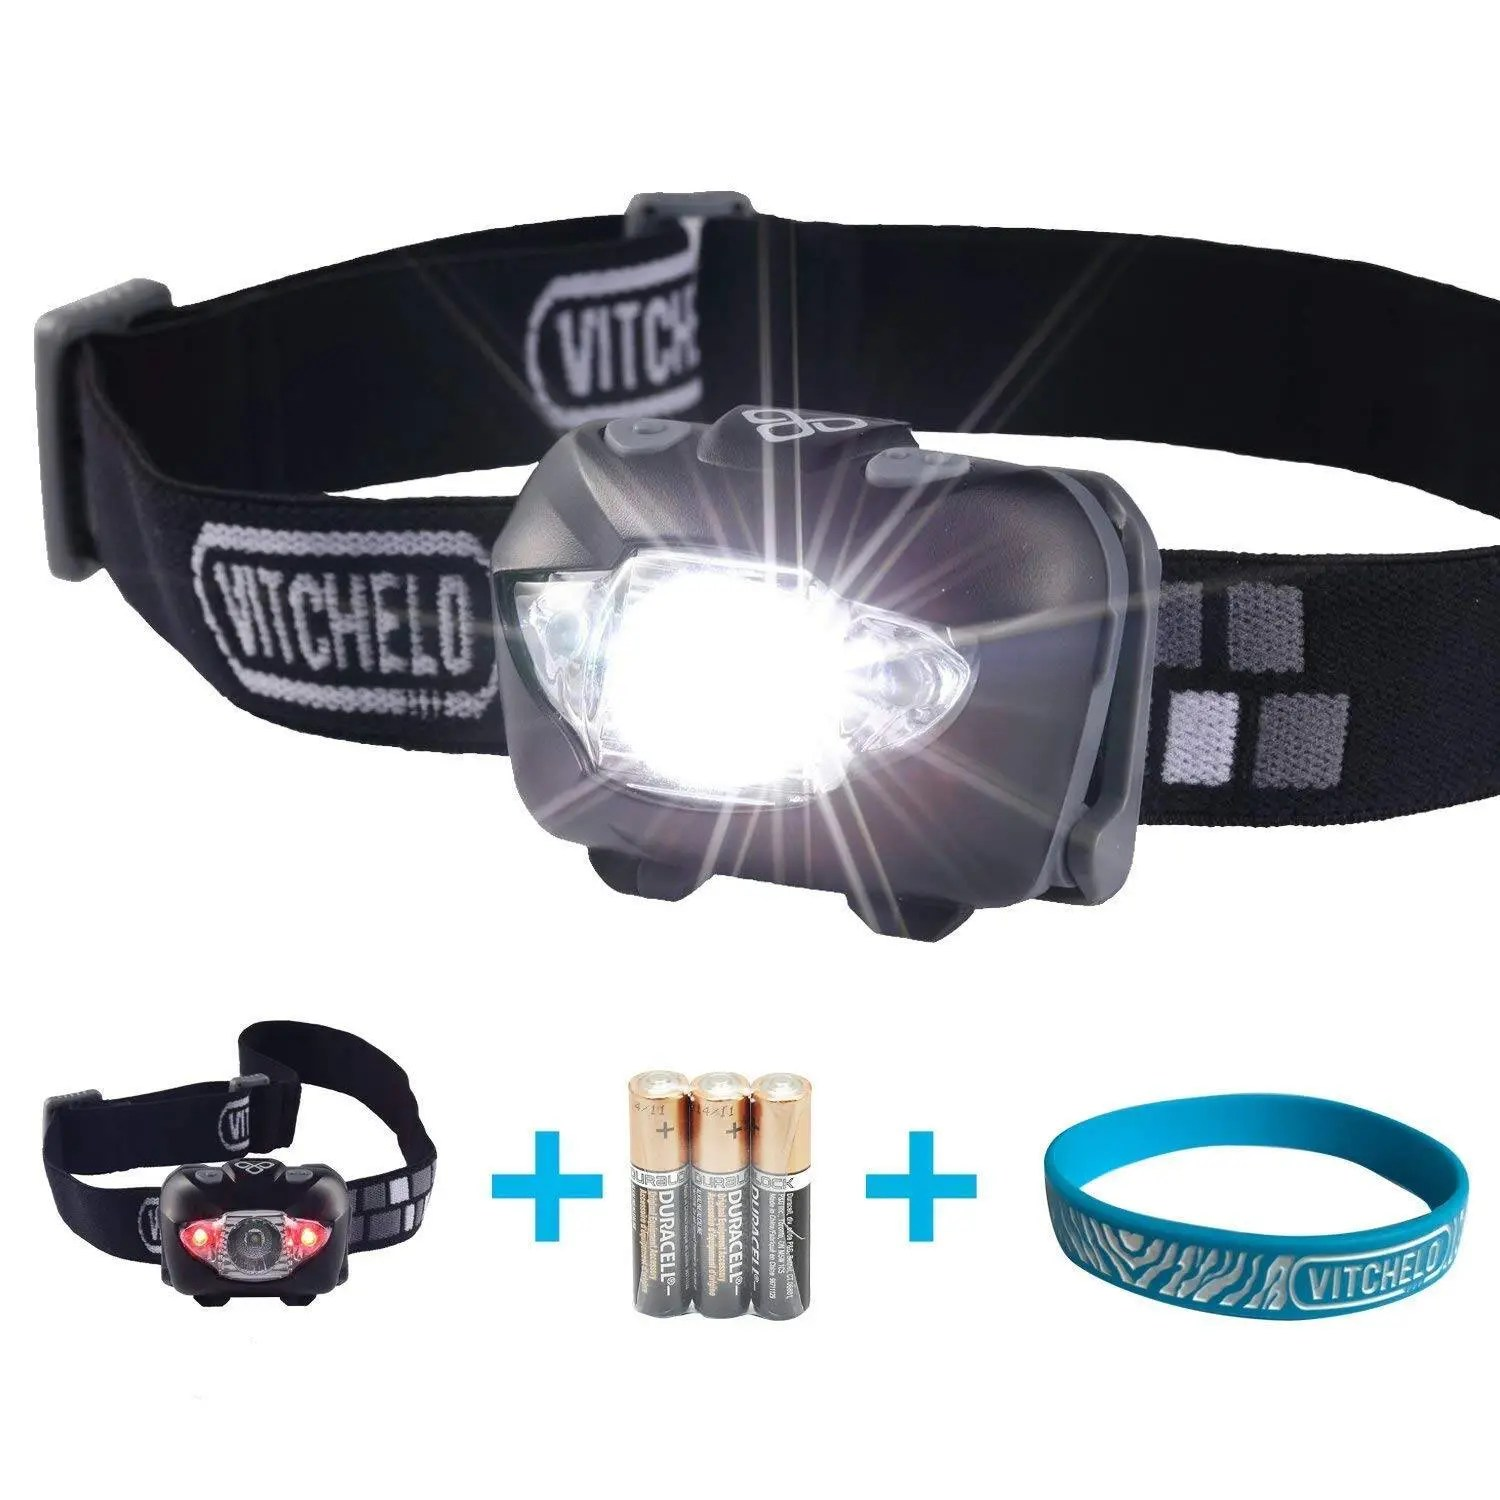 VITCHELO V800 Headlamp with White and Red LED Lights